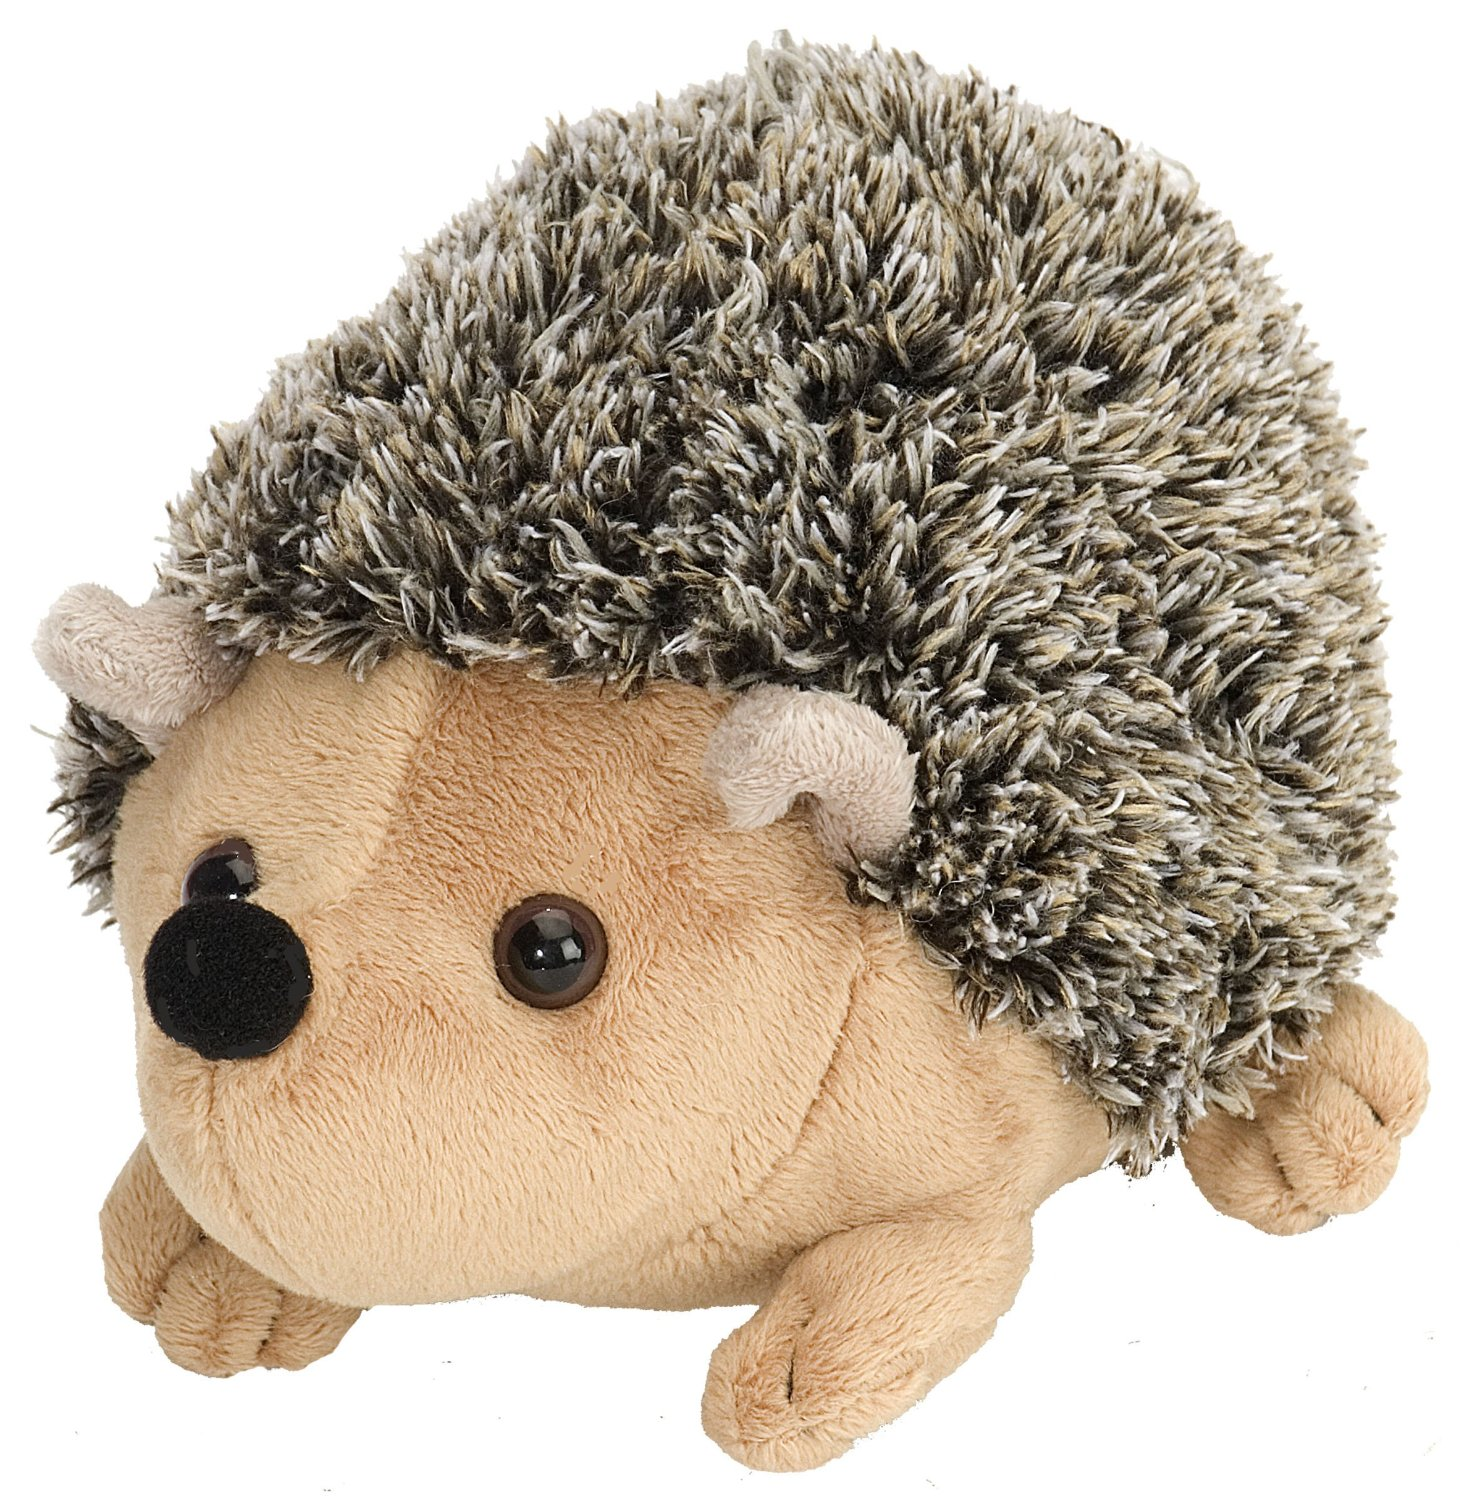 Cuddly Hedgehog - Fully Customisable Plush